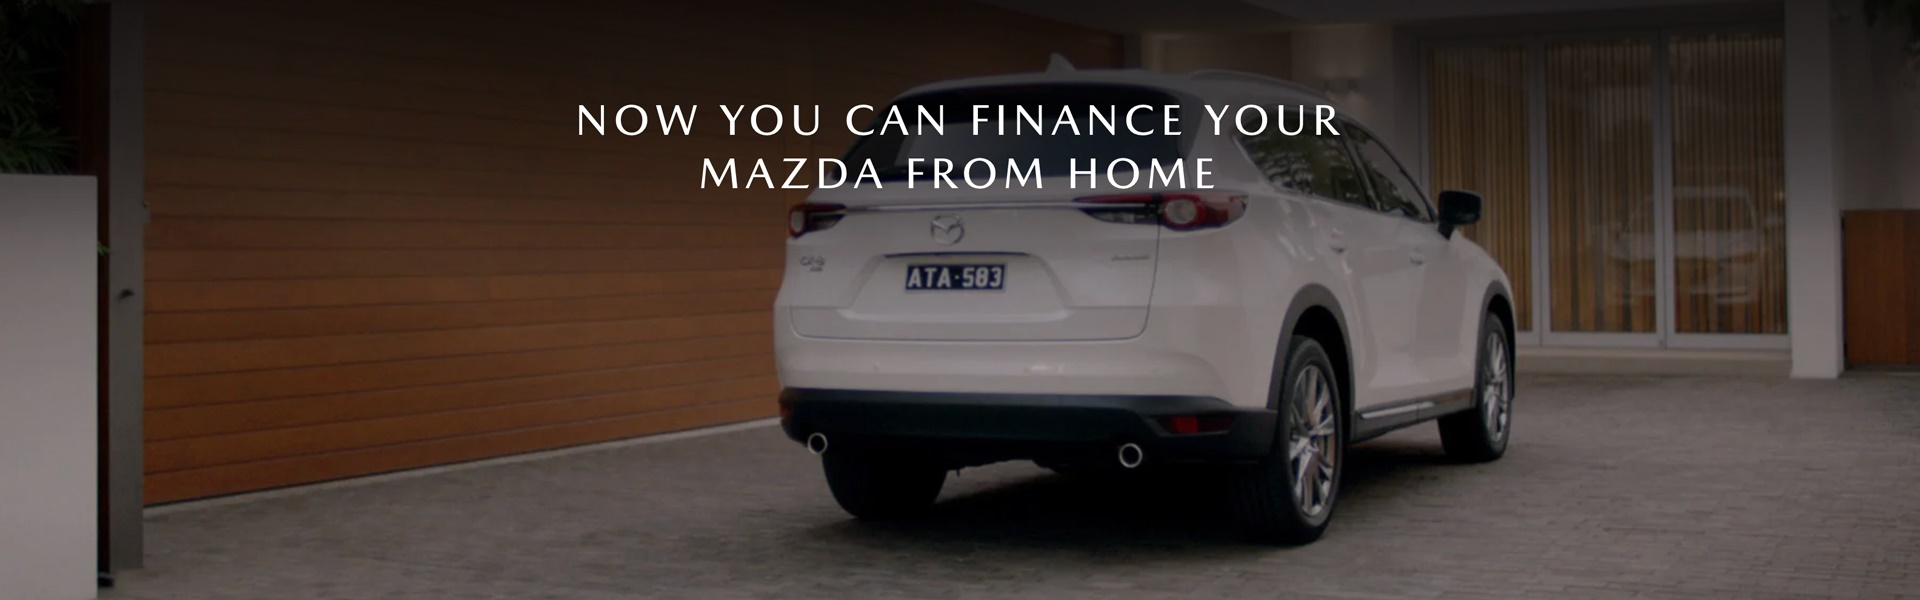 Finance Your Mazda from Home